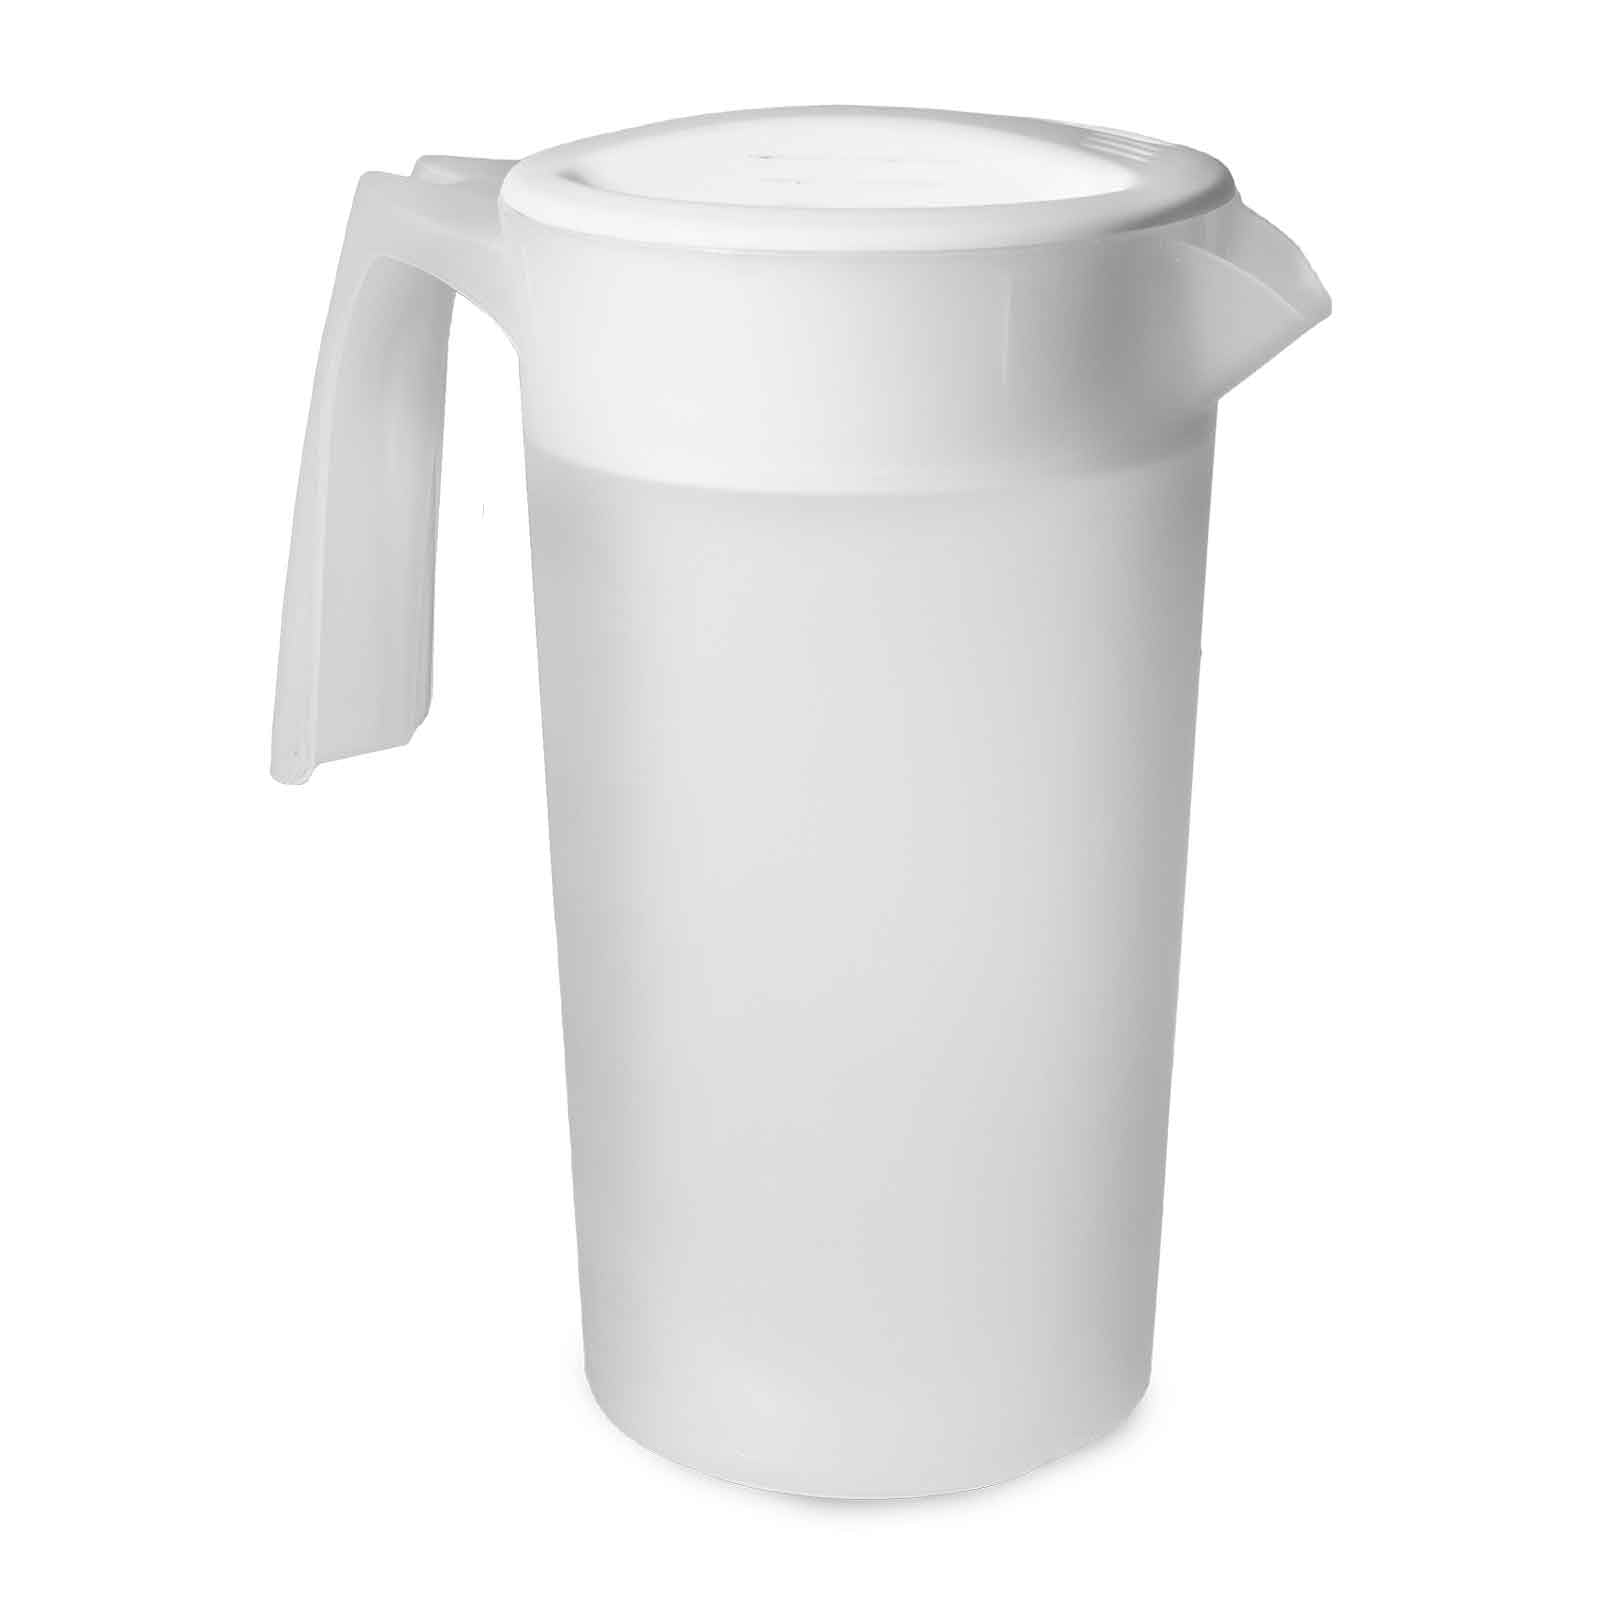 Geo 2 Liter White Pitcher with Push Cap